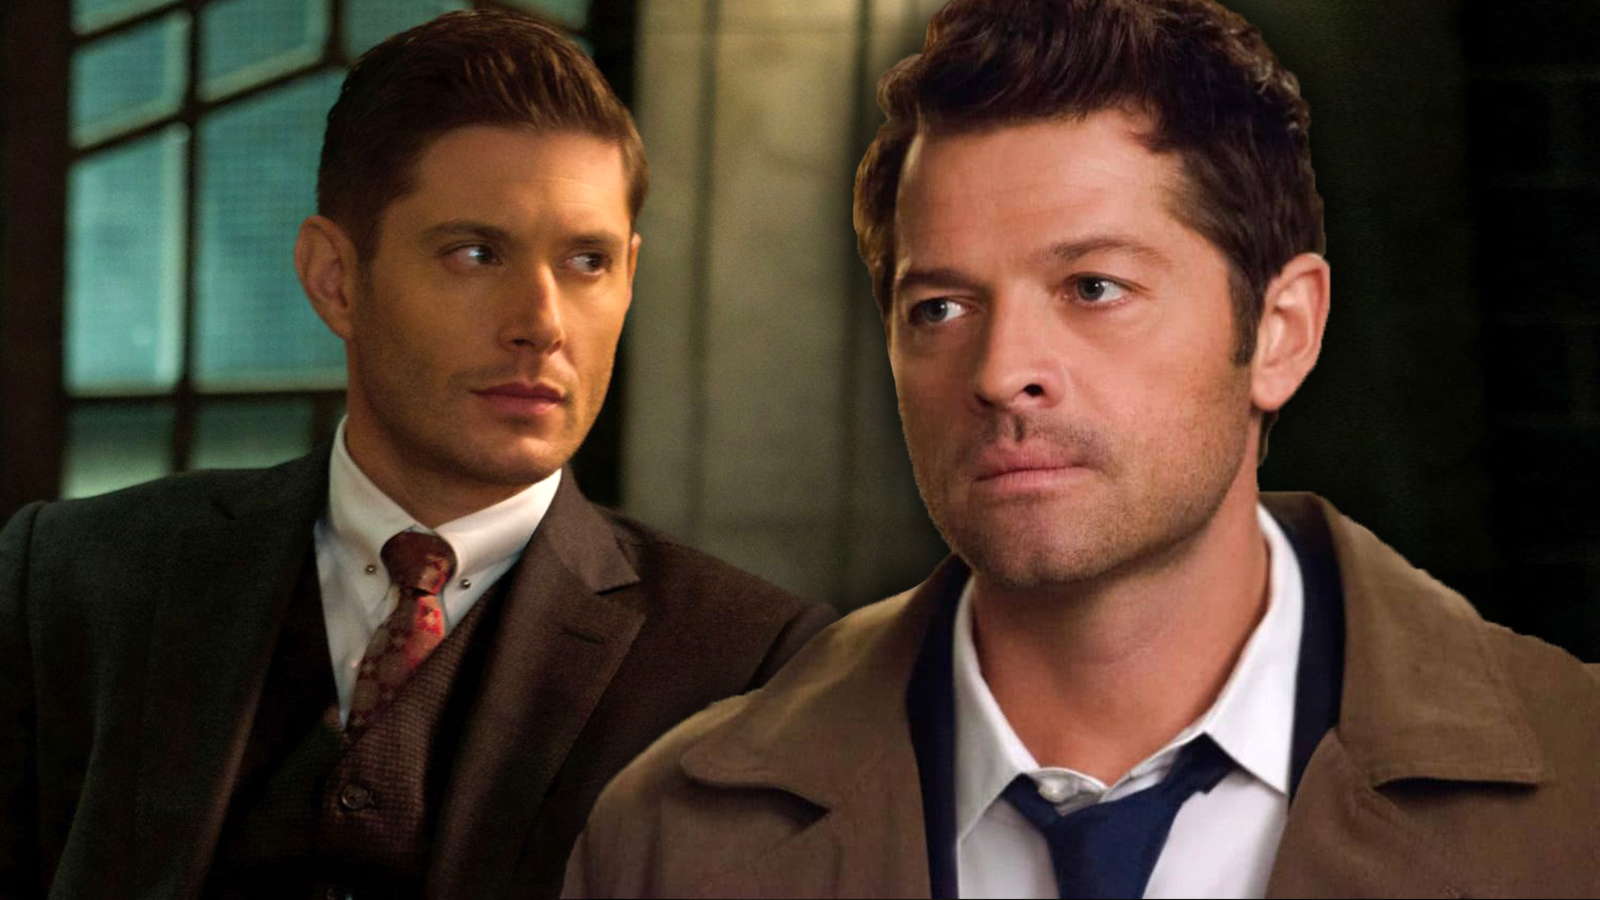 Dean and Castiel in Supernatural